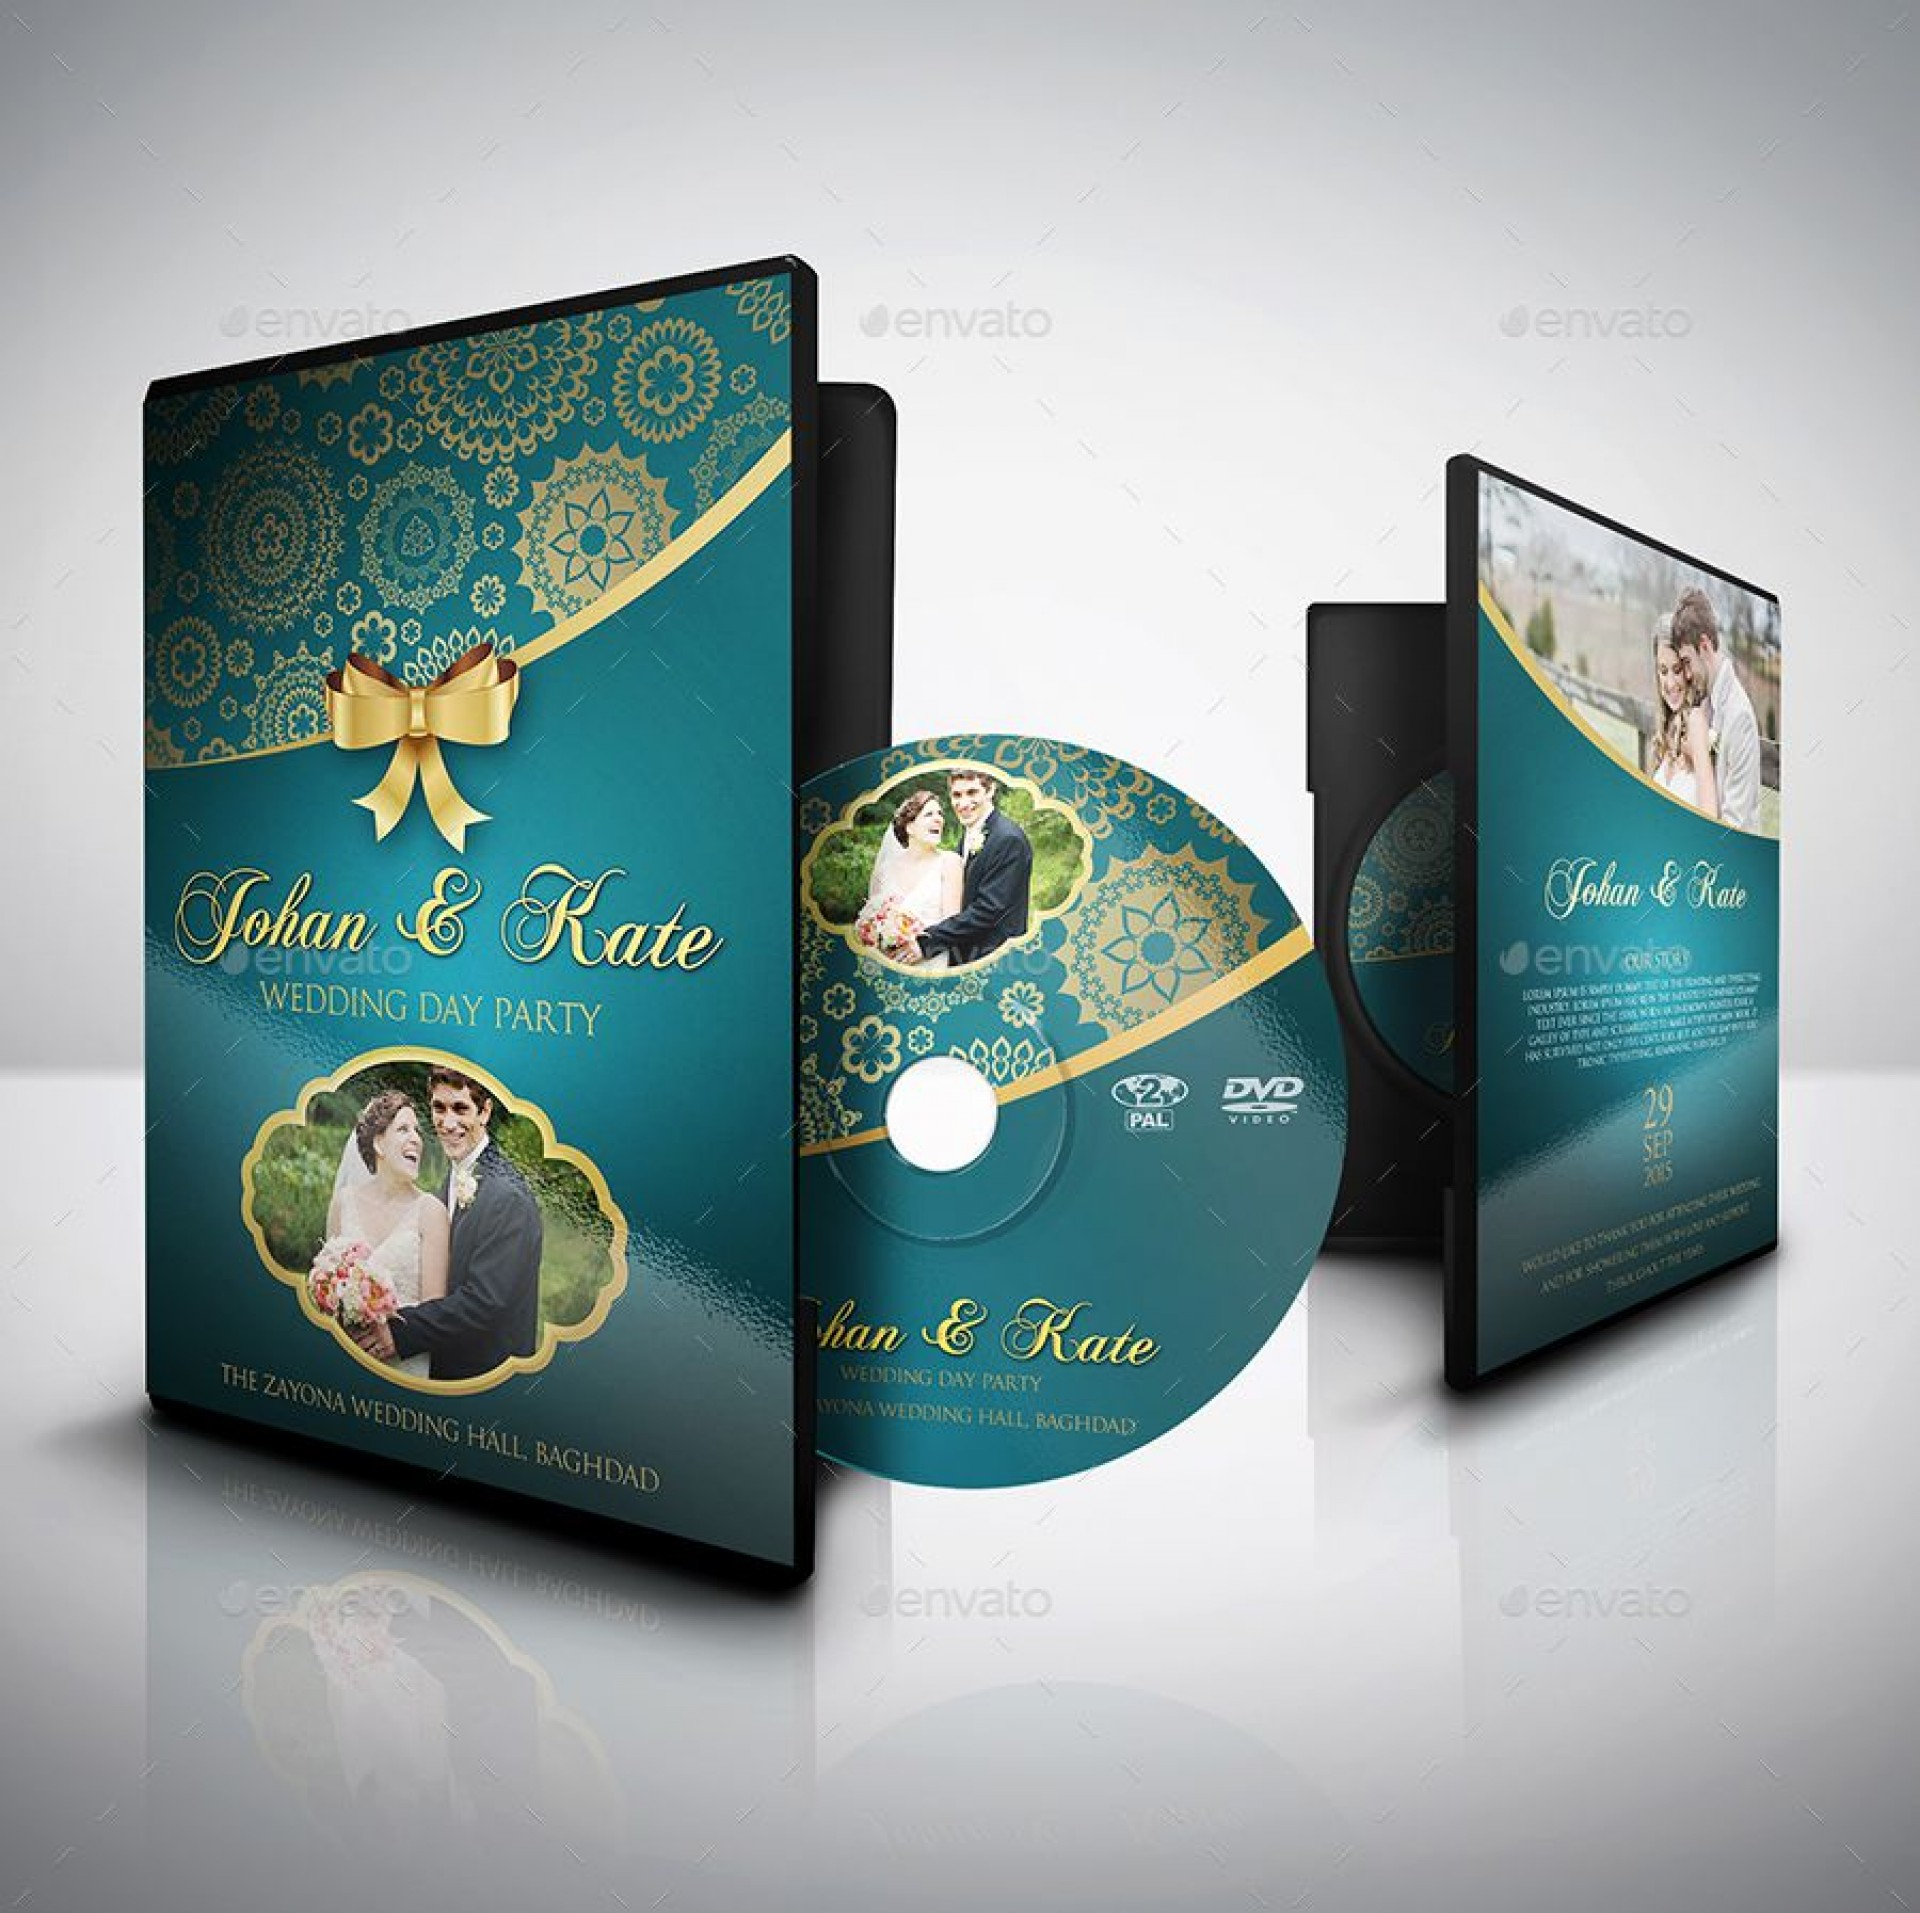 000 Astounding Wedding Cd Cover Design Template Free Download Photo 1920